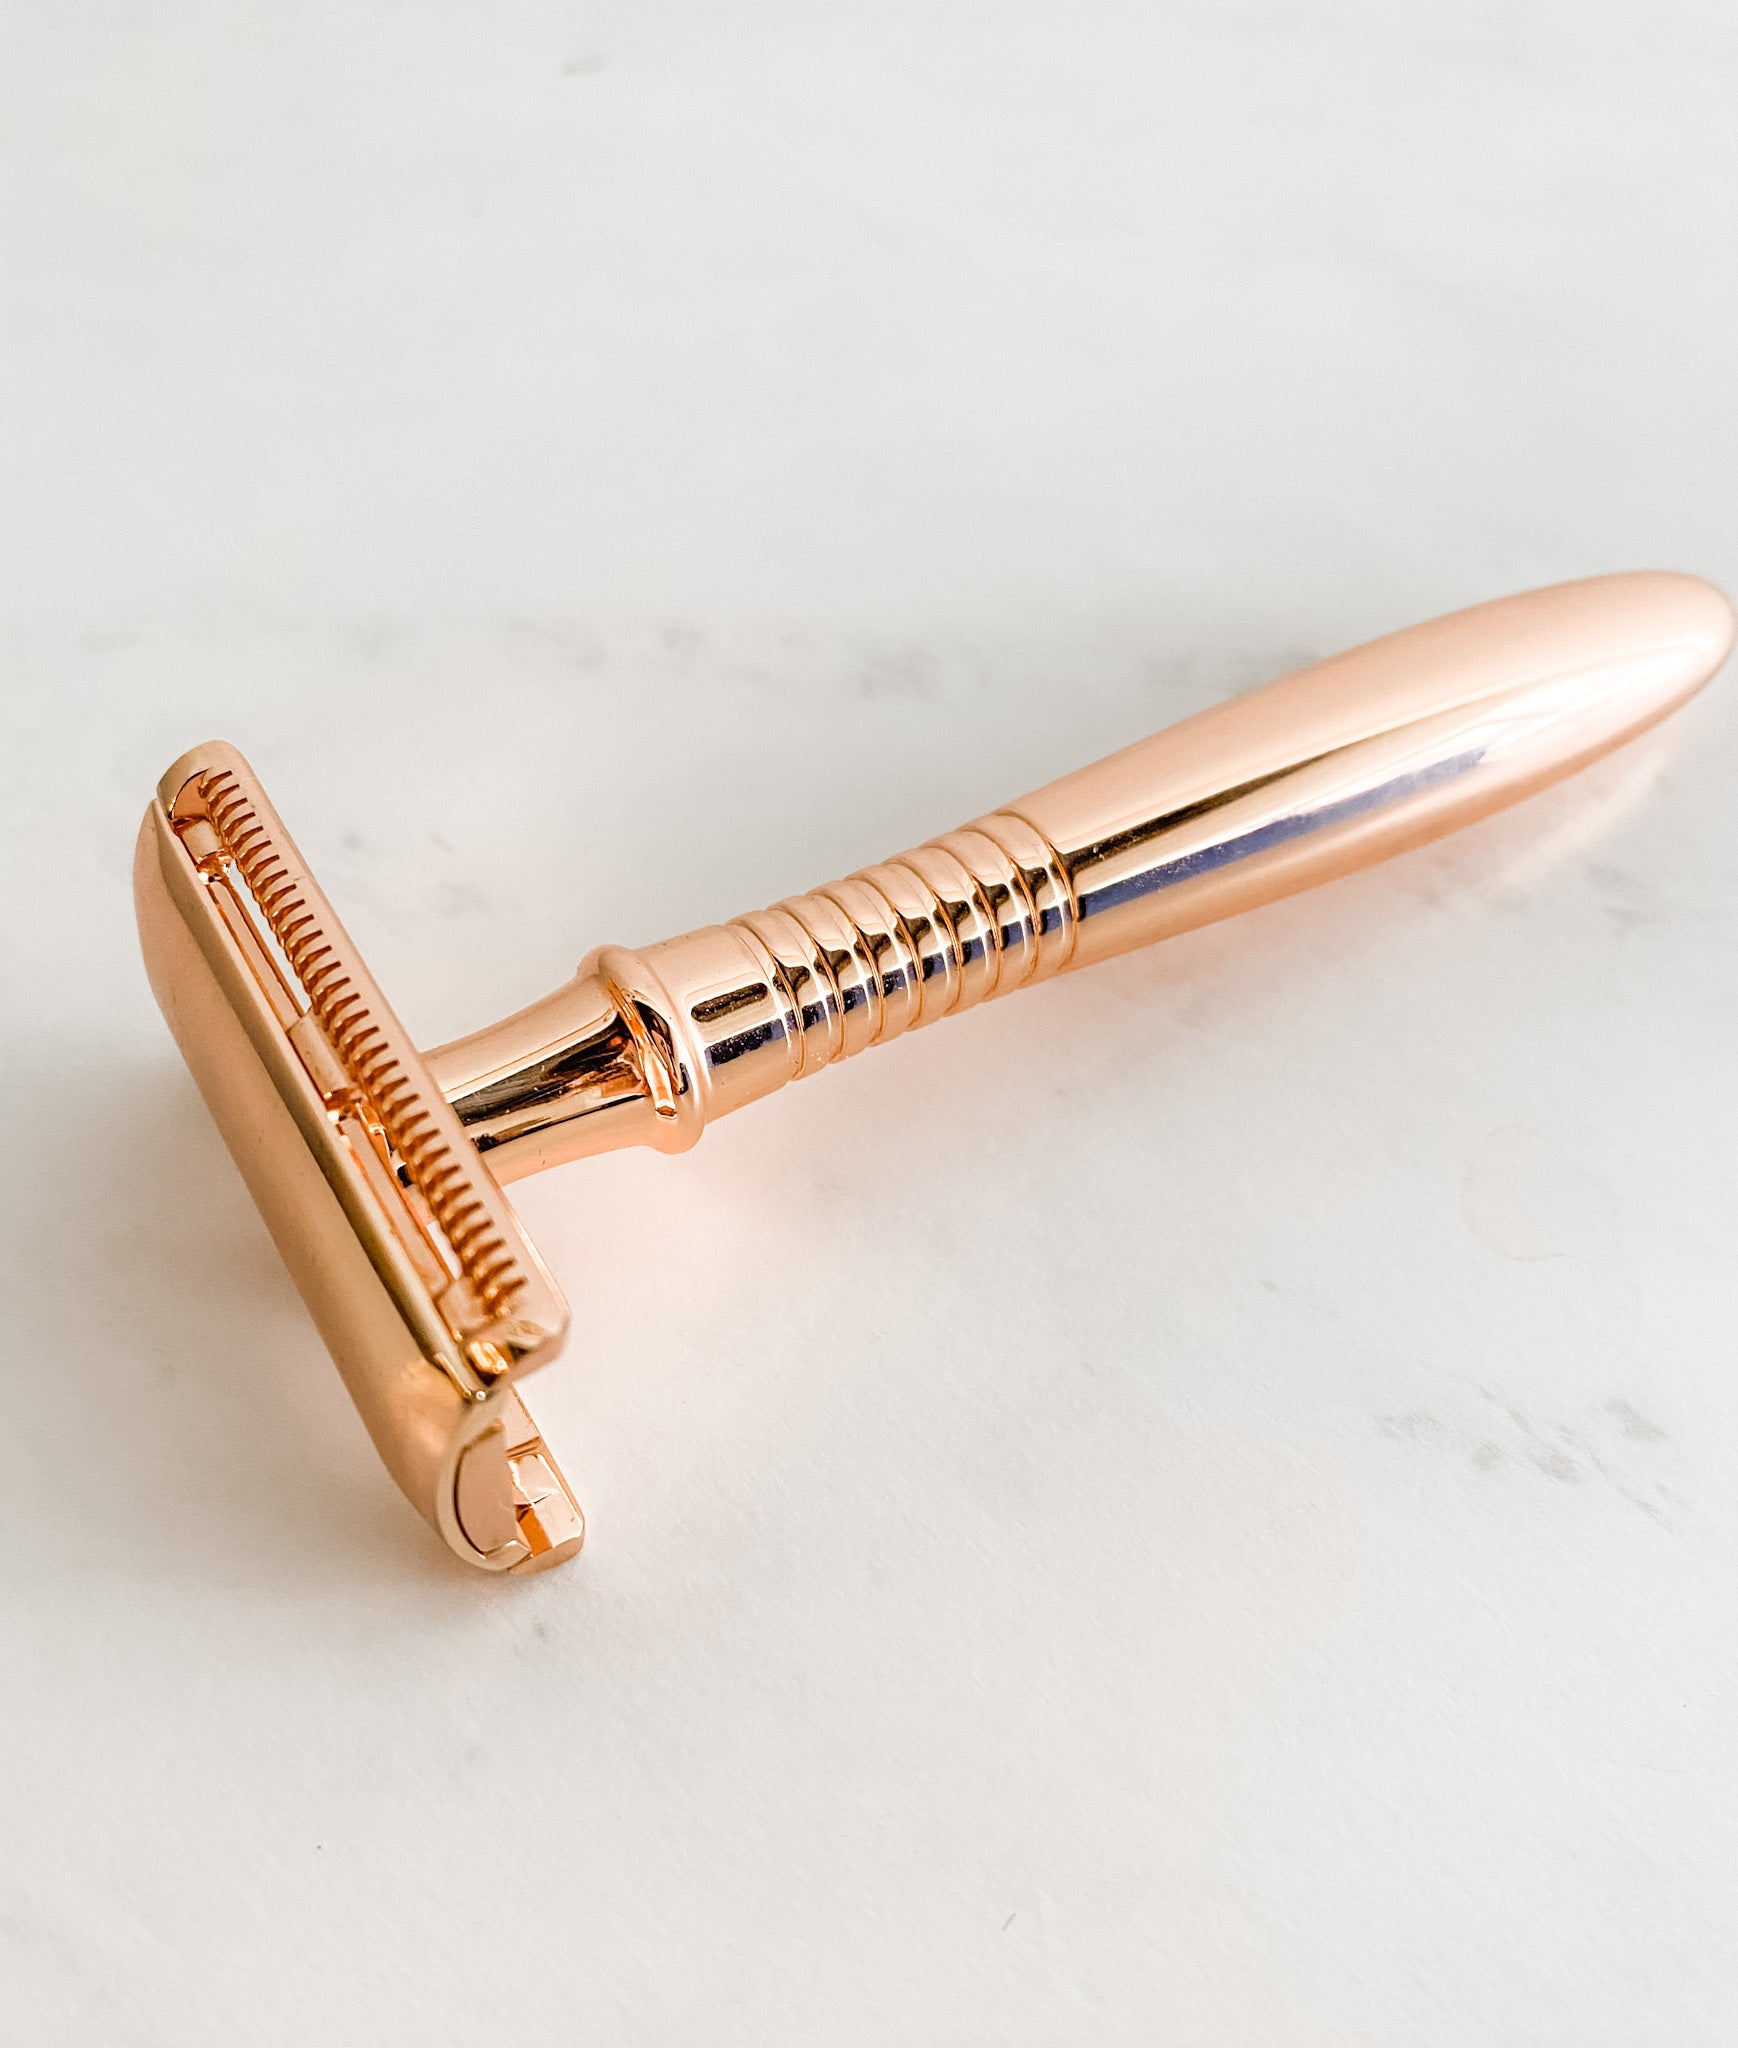 reusable razor, safety razor, zero waste razor, sustainable shaving,  for women - Shop Be Pure